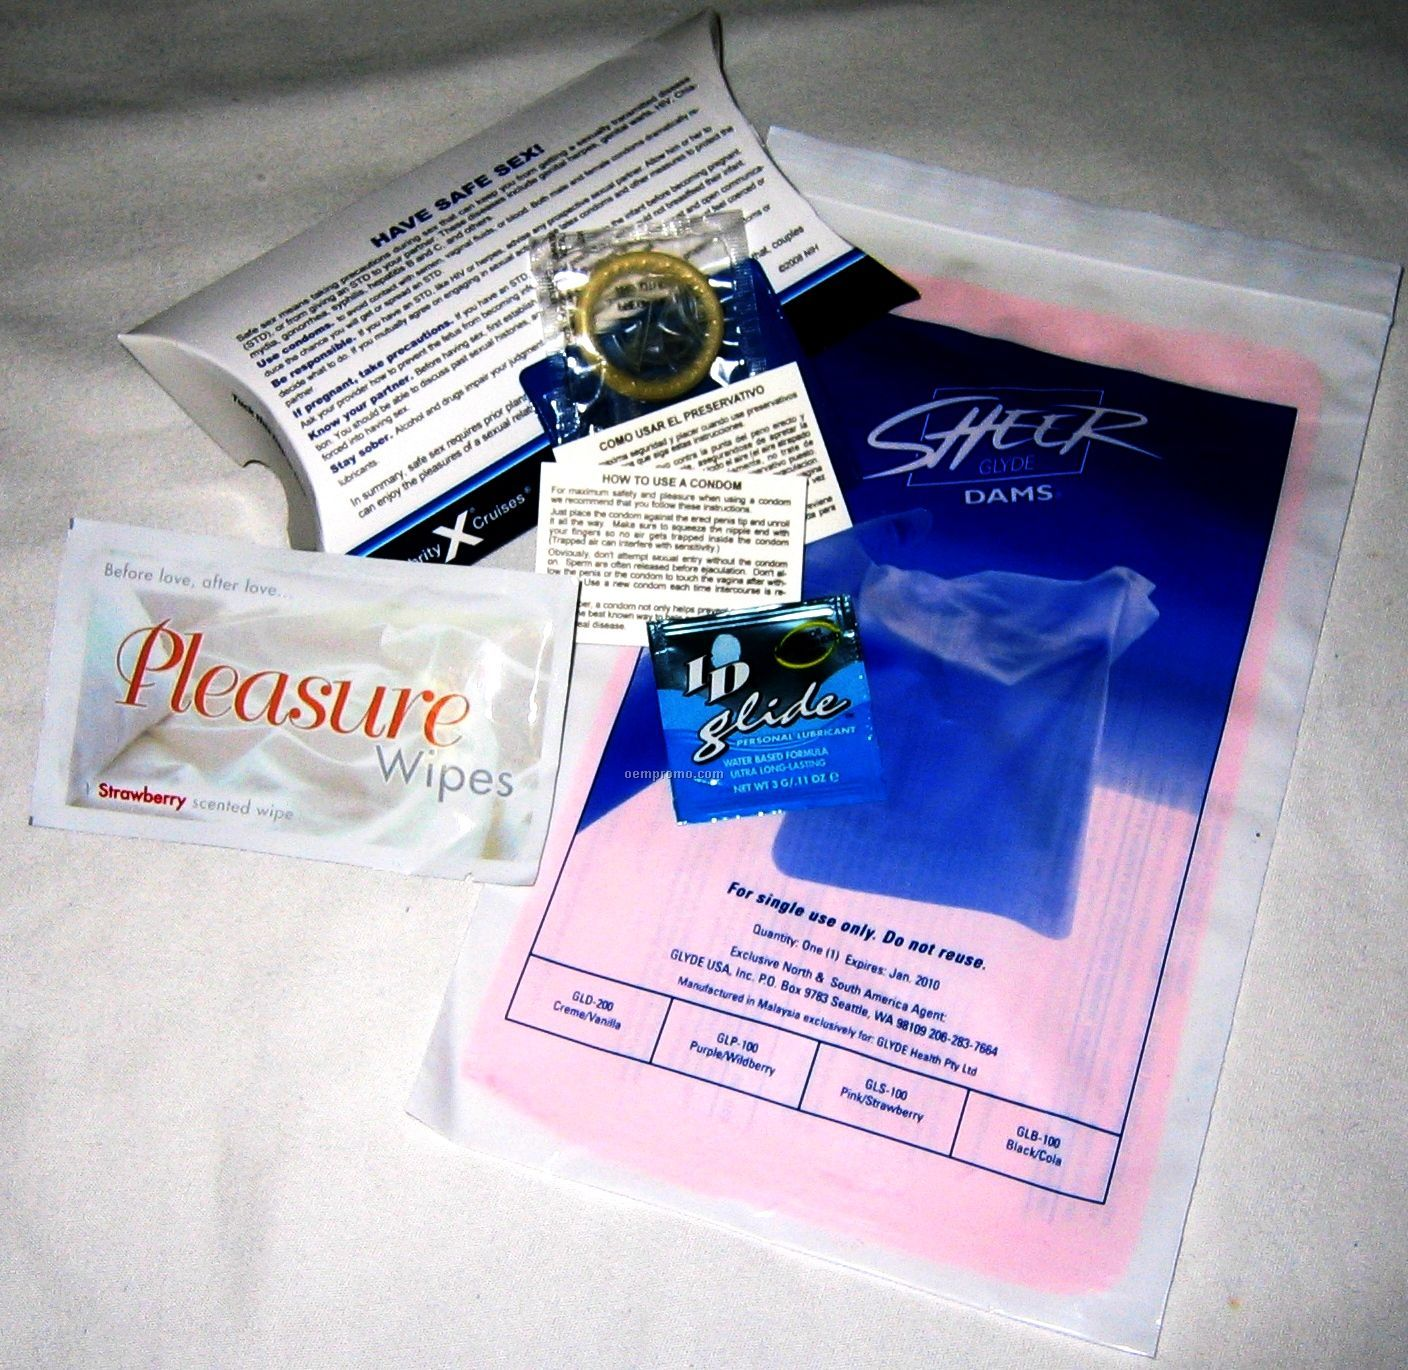 Safe Sex Dam Kit